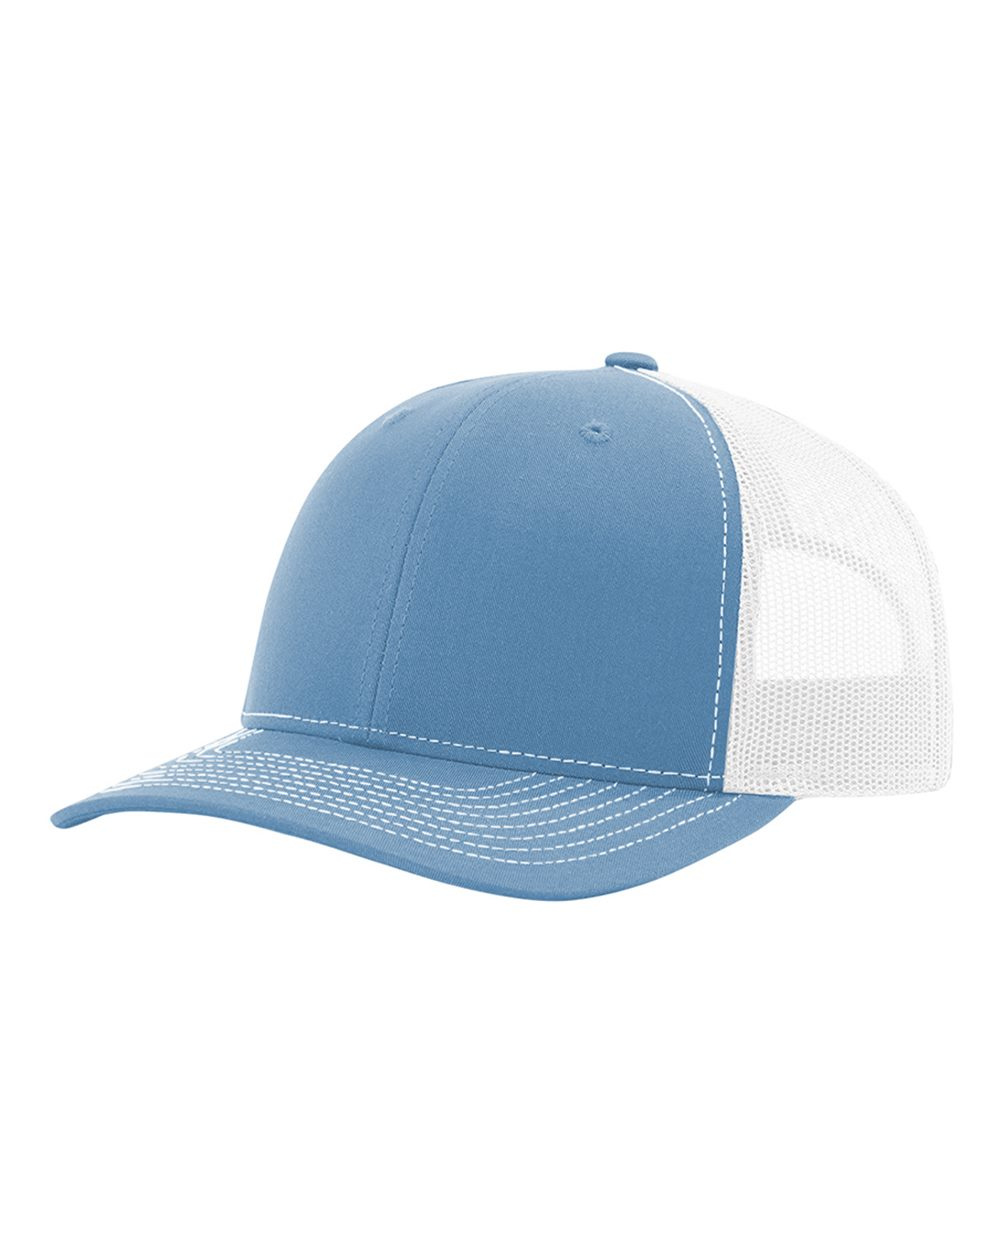 click to view Columbia Blue/ White